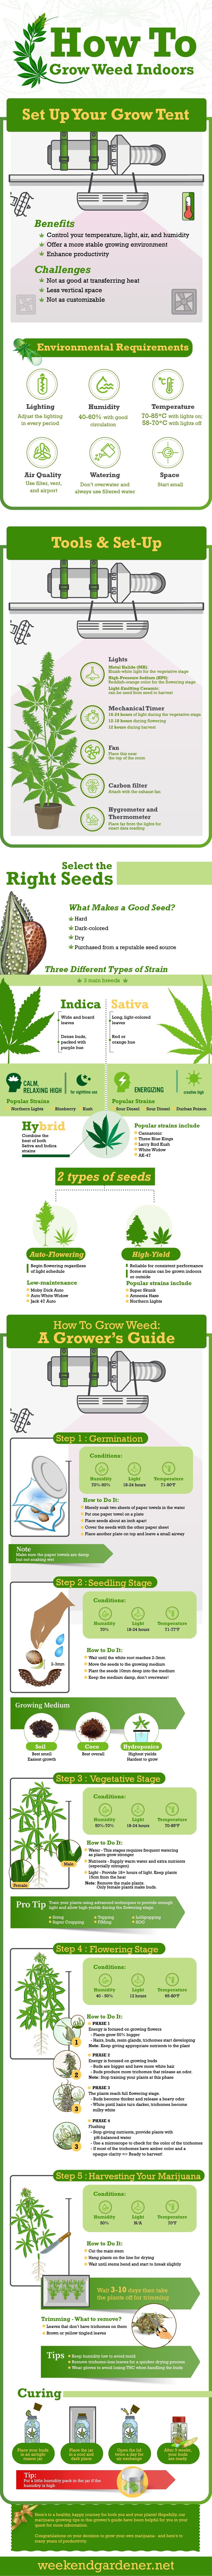 Growing Marijuana Indoors: The Ultimate Guide For Beginner #infographic